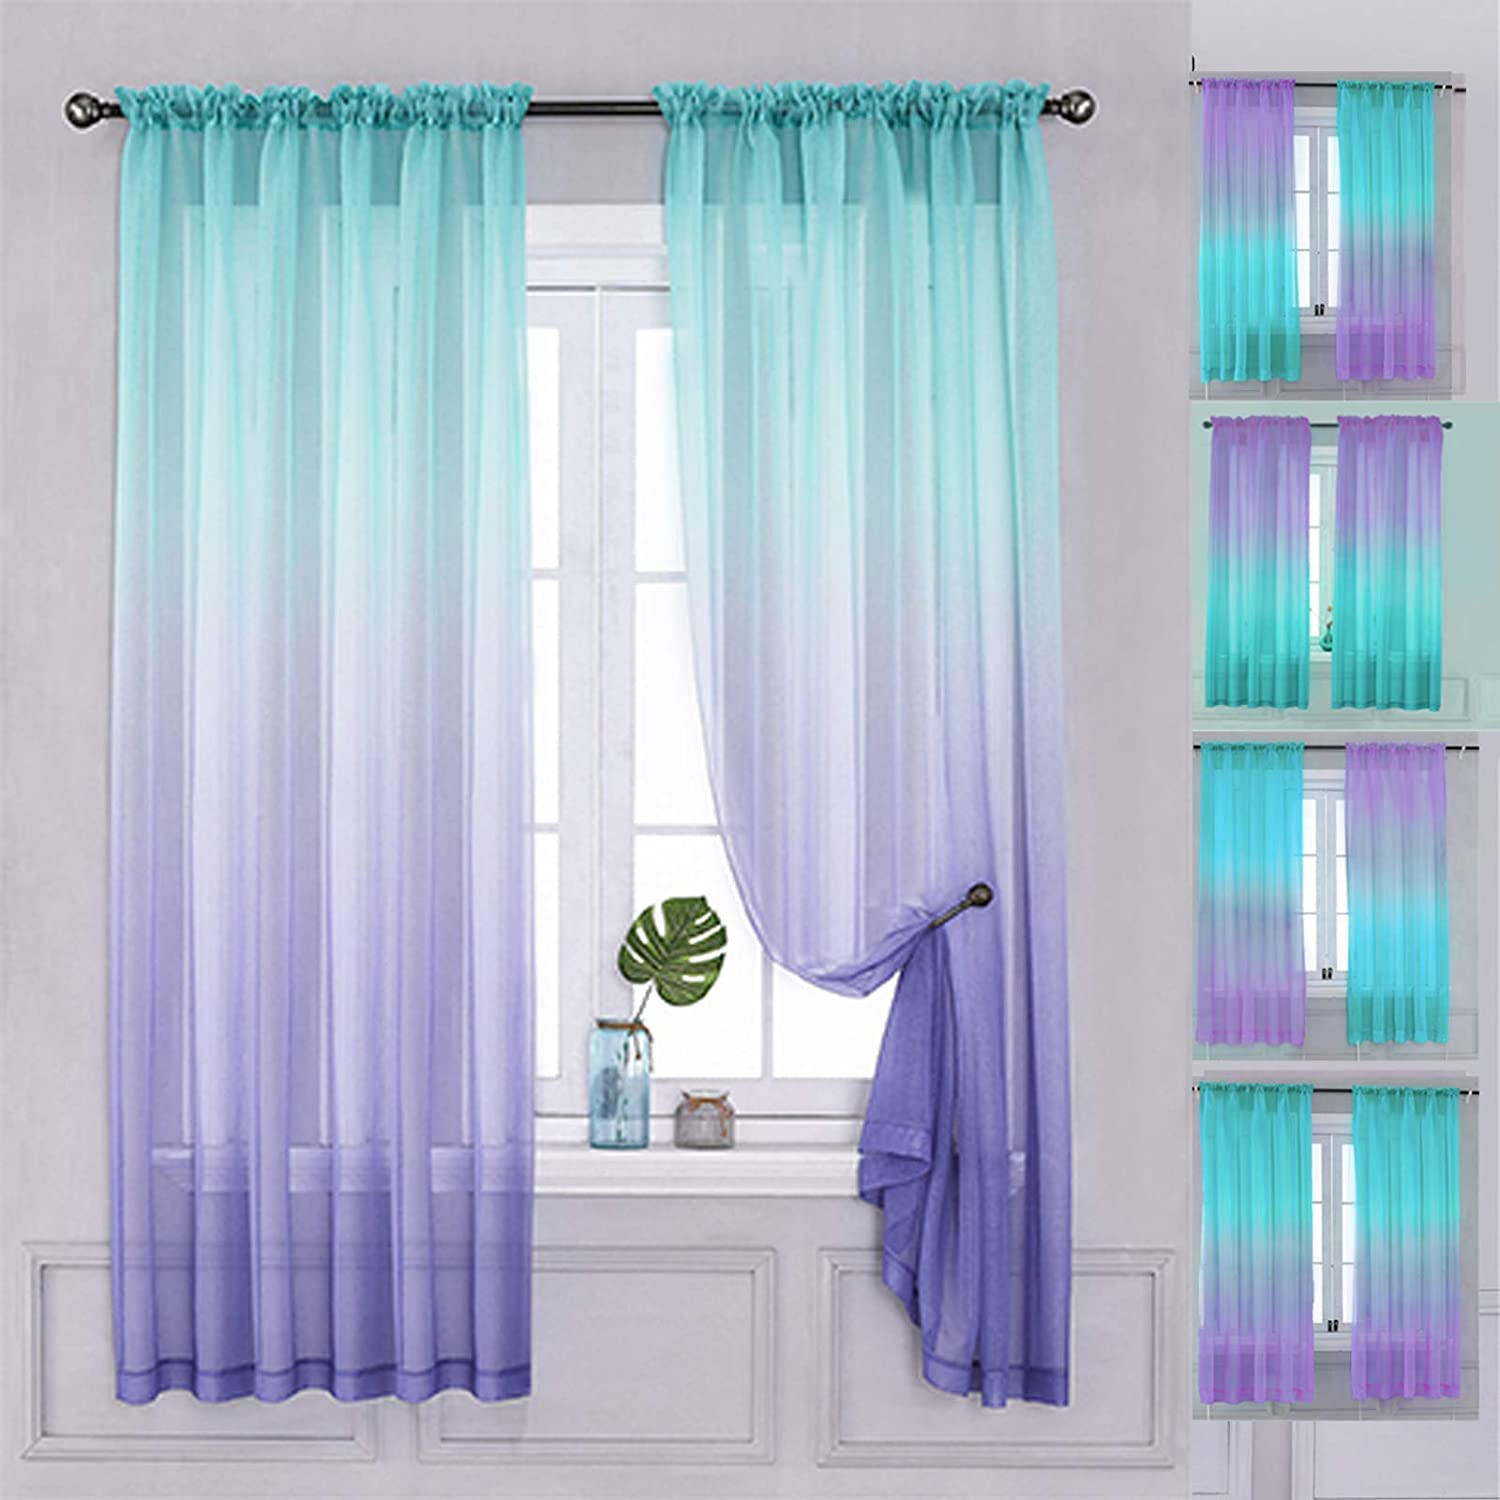 Buy Yancorp 14 Panel Sets Semi Bedroom Curtains 14 inch Length